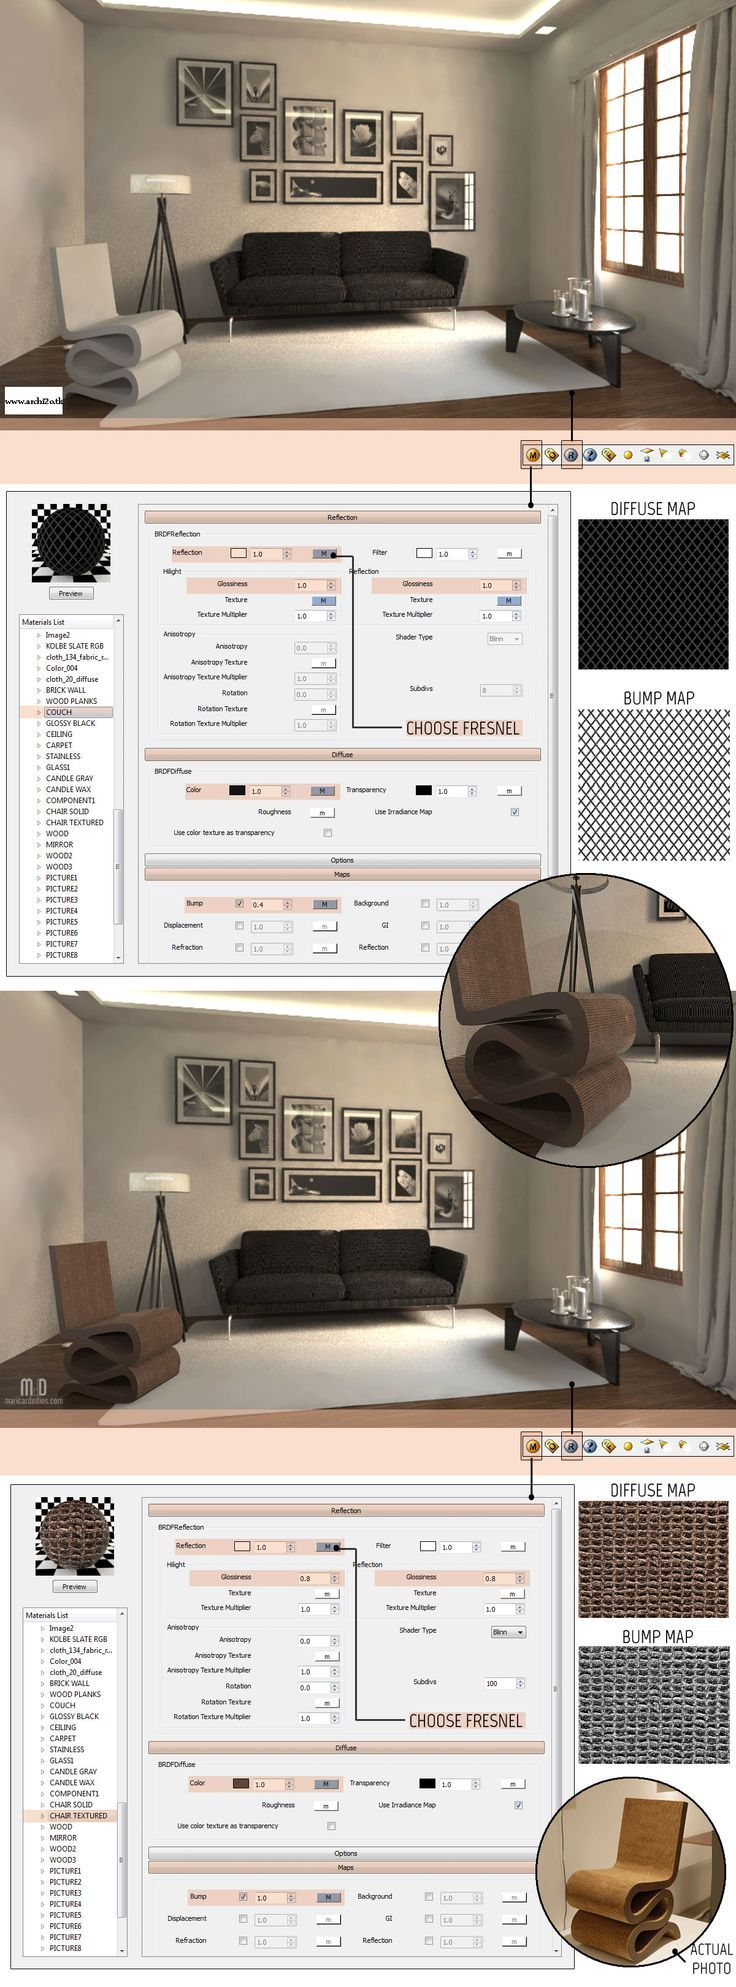 SketchUp Tutorial Part 2: VRAY MATERIALS AND TEXTURES